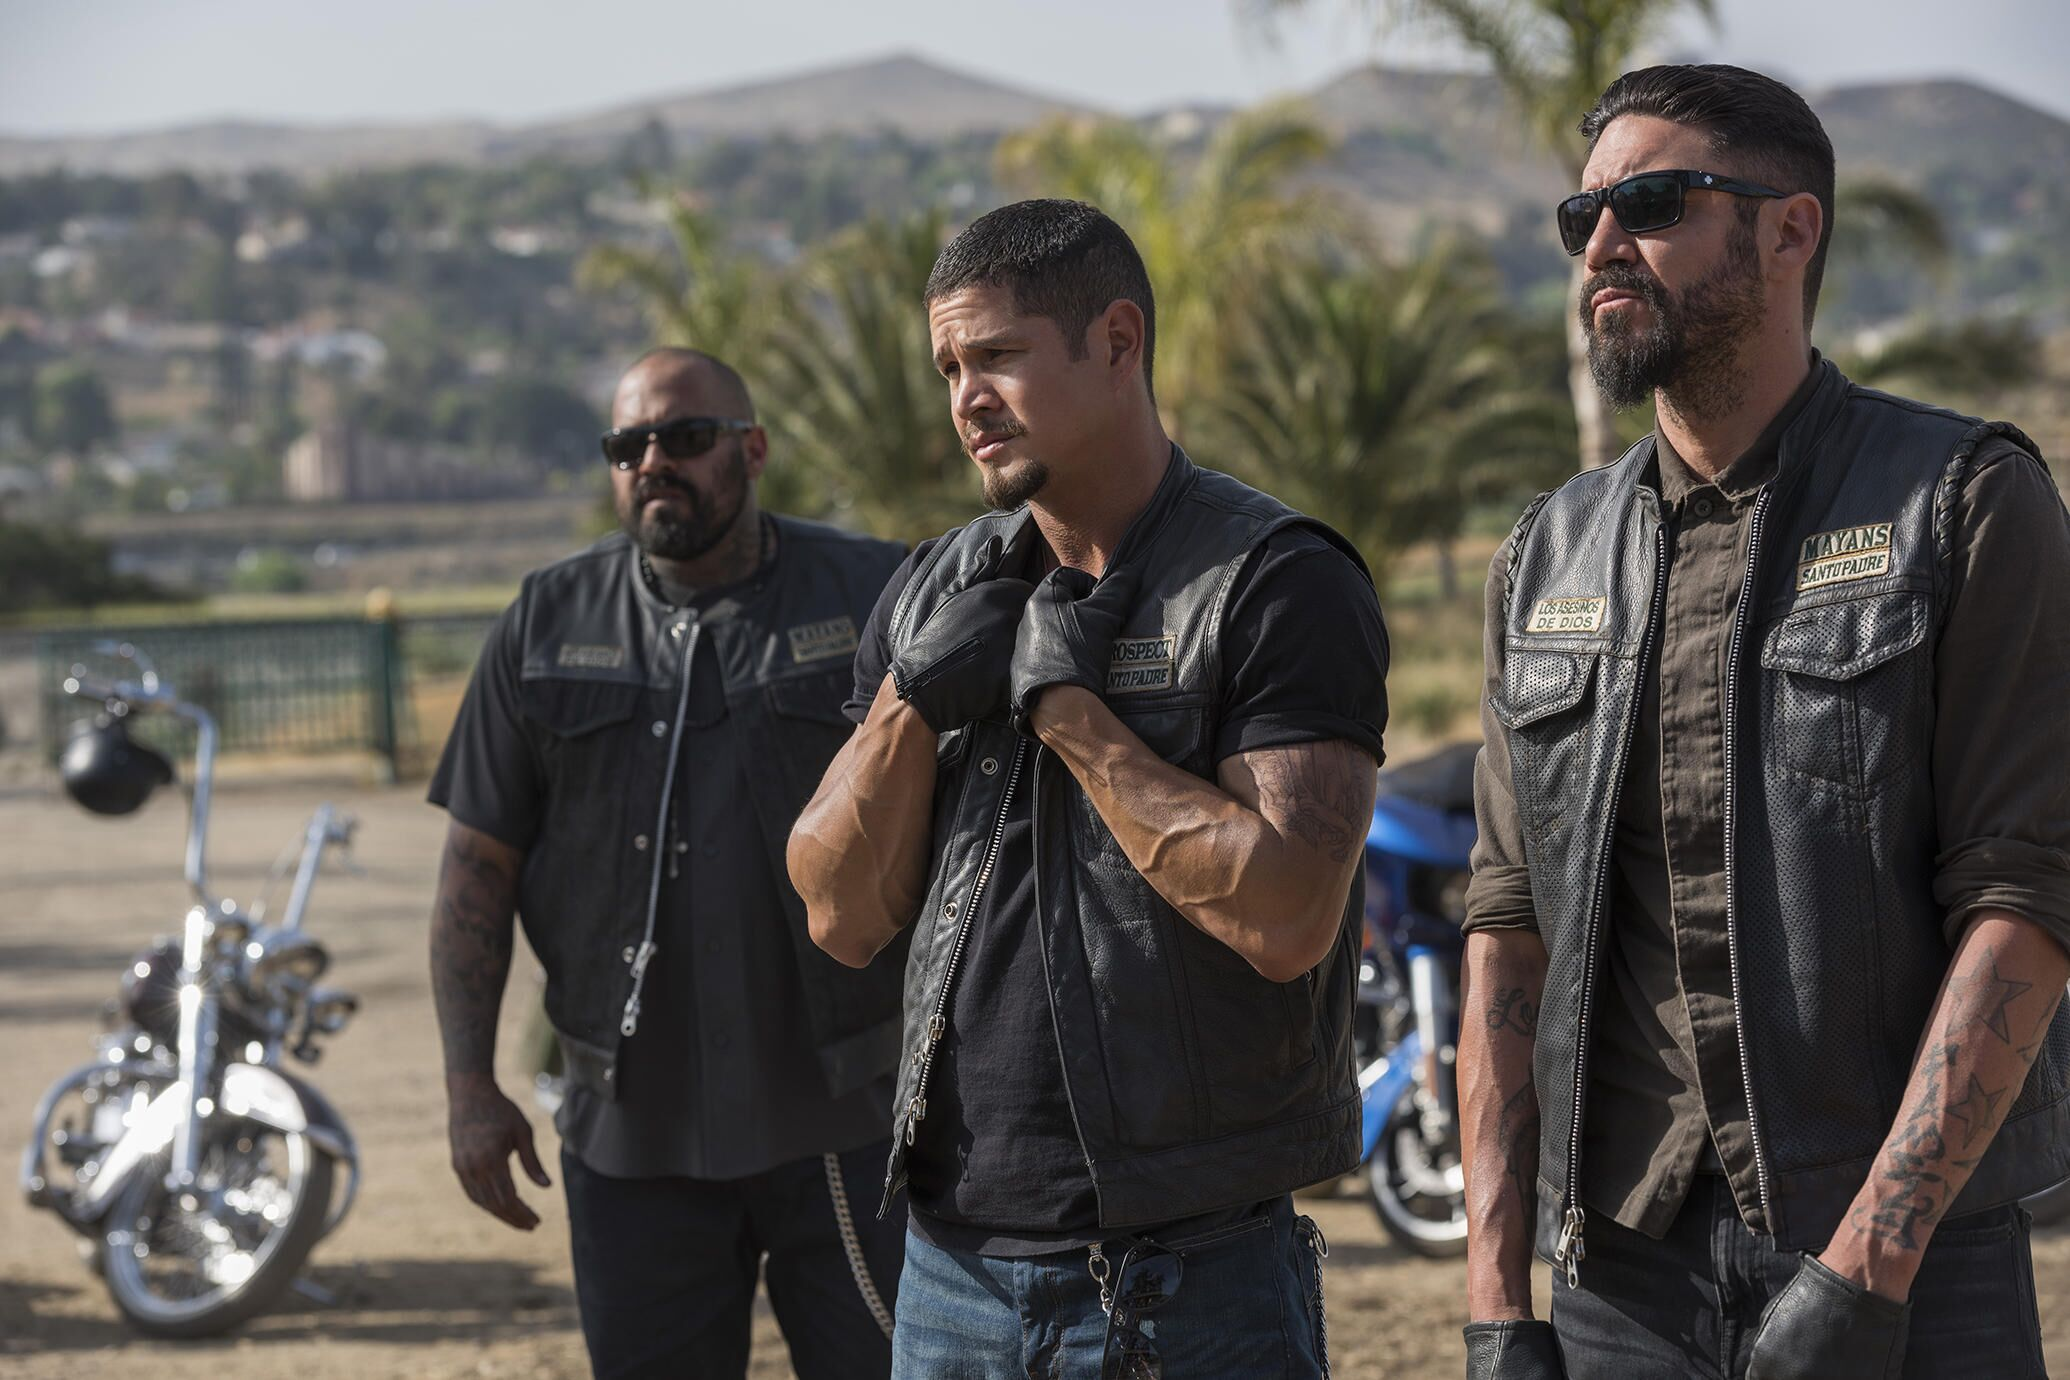 Mayans MC season 1, episode 9 recap: Serpiente/Chikchan